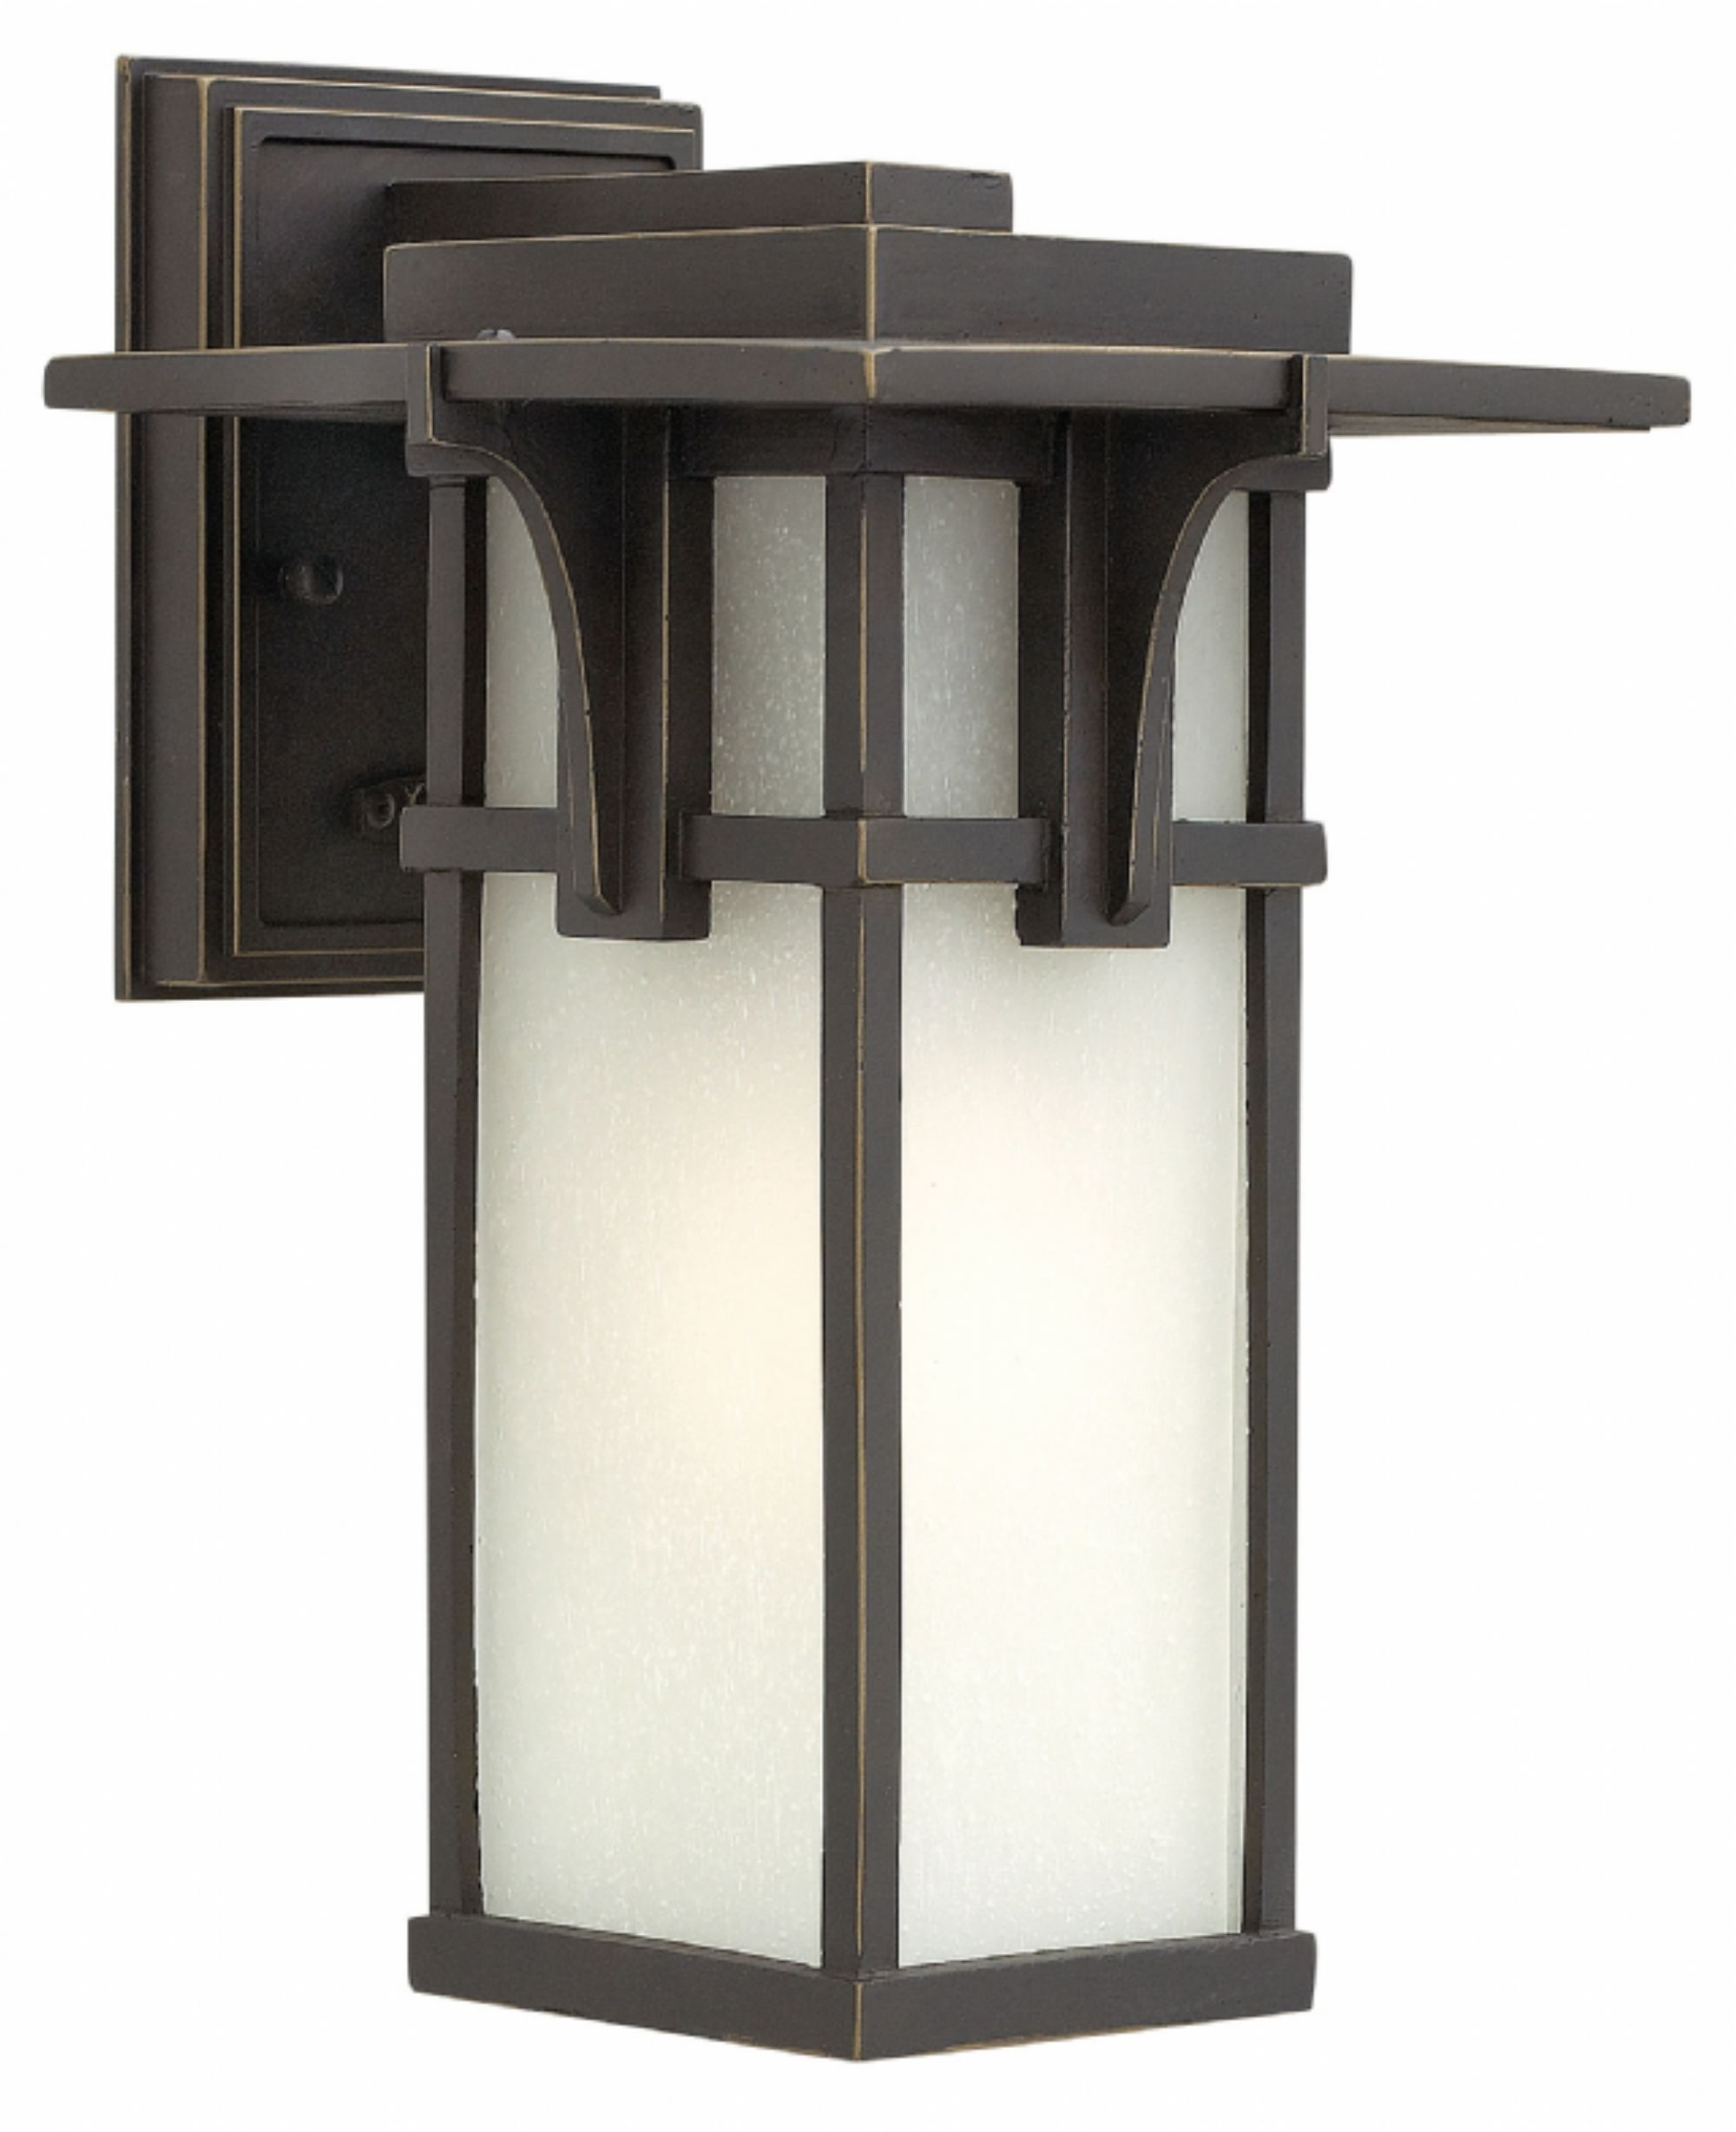 Hinkley Outdoor Wall Lighting With Regard To Well Known Oil Rubbed Bronze Manhattan > Exterior Wall Mount (View 9 of 20)